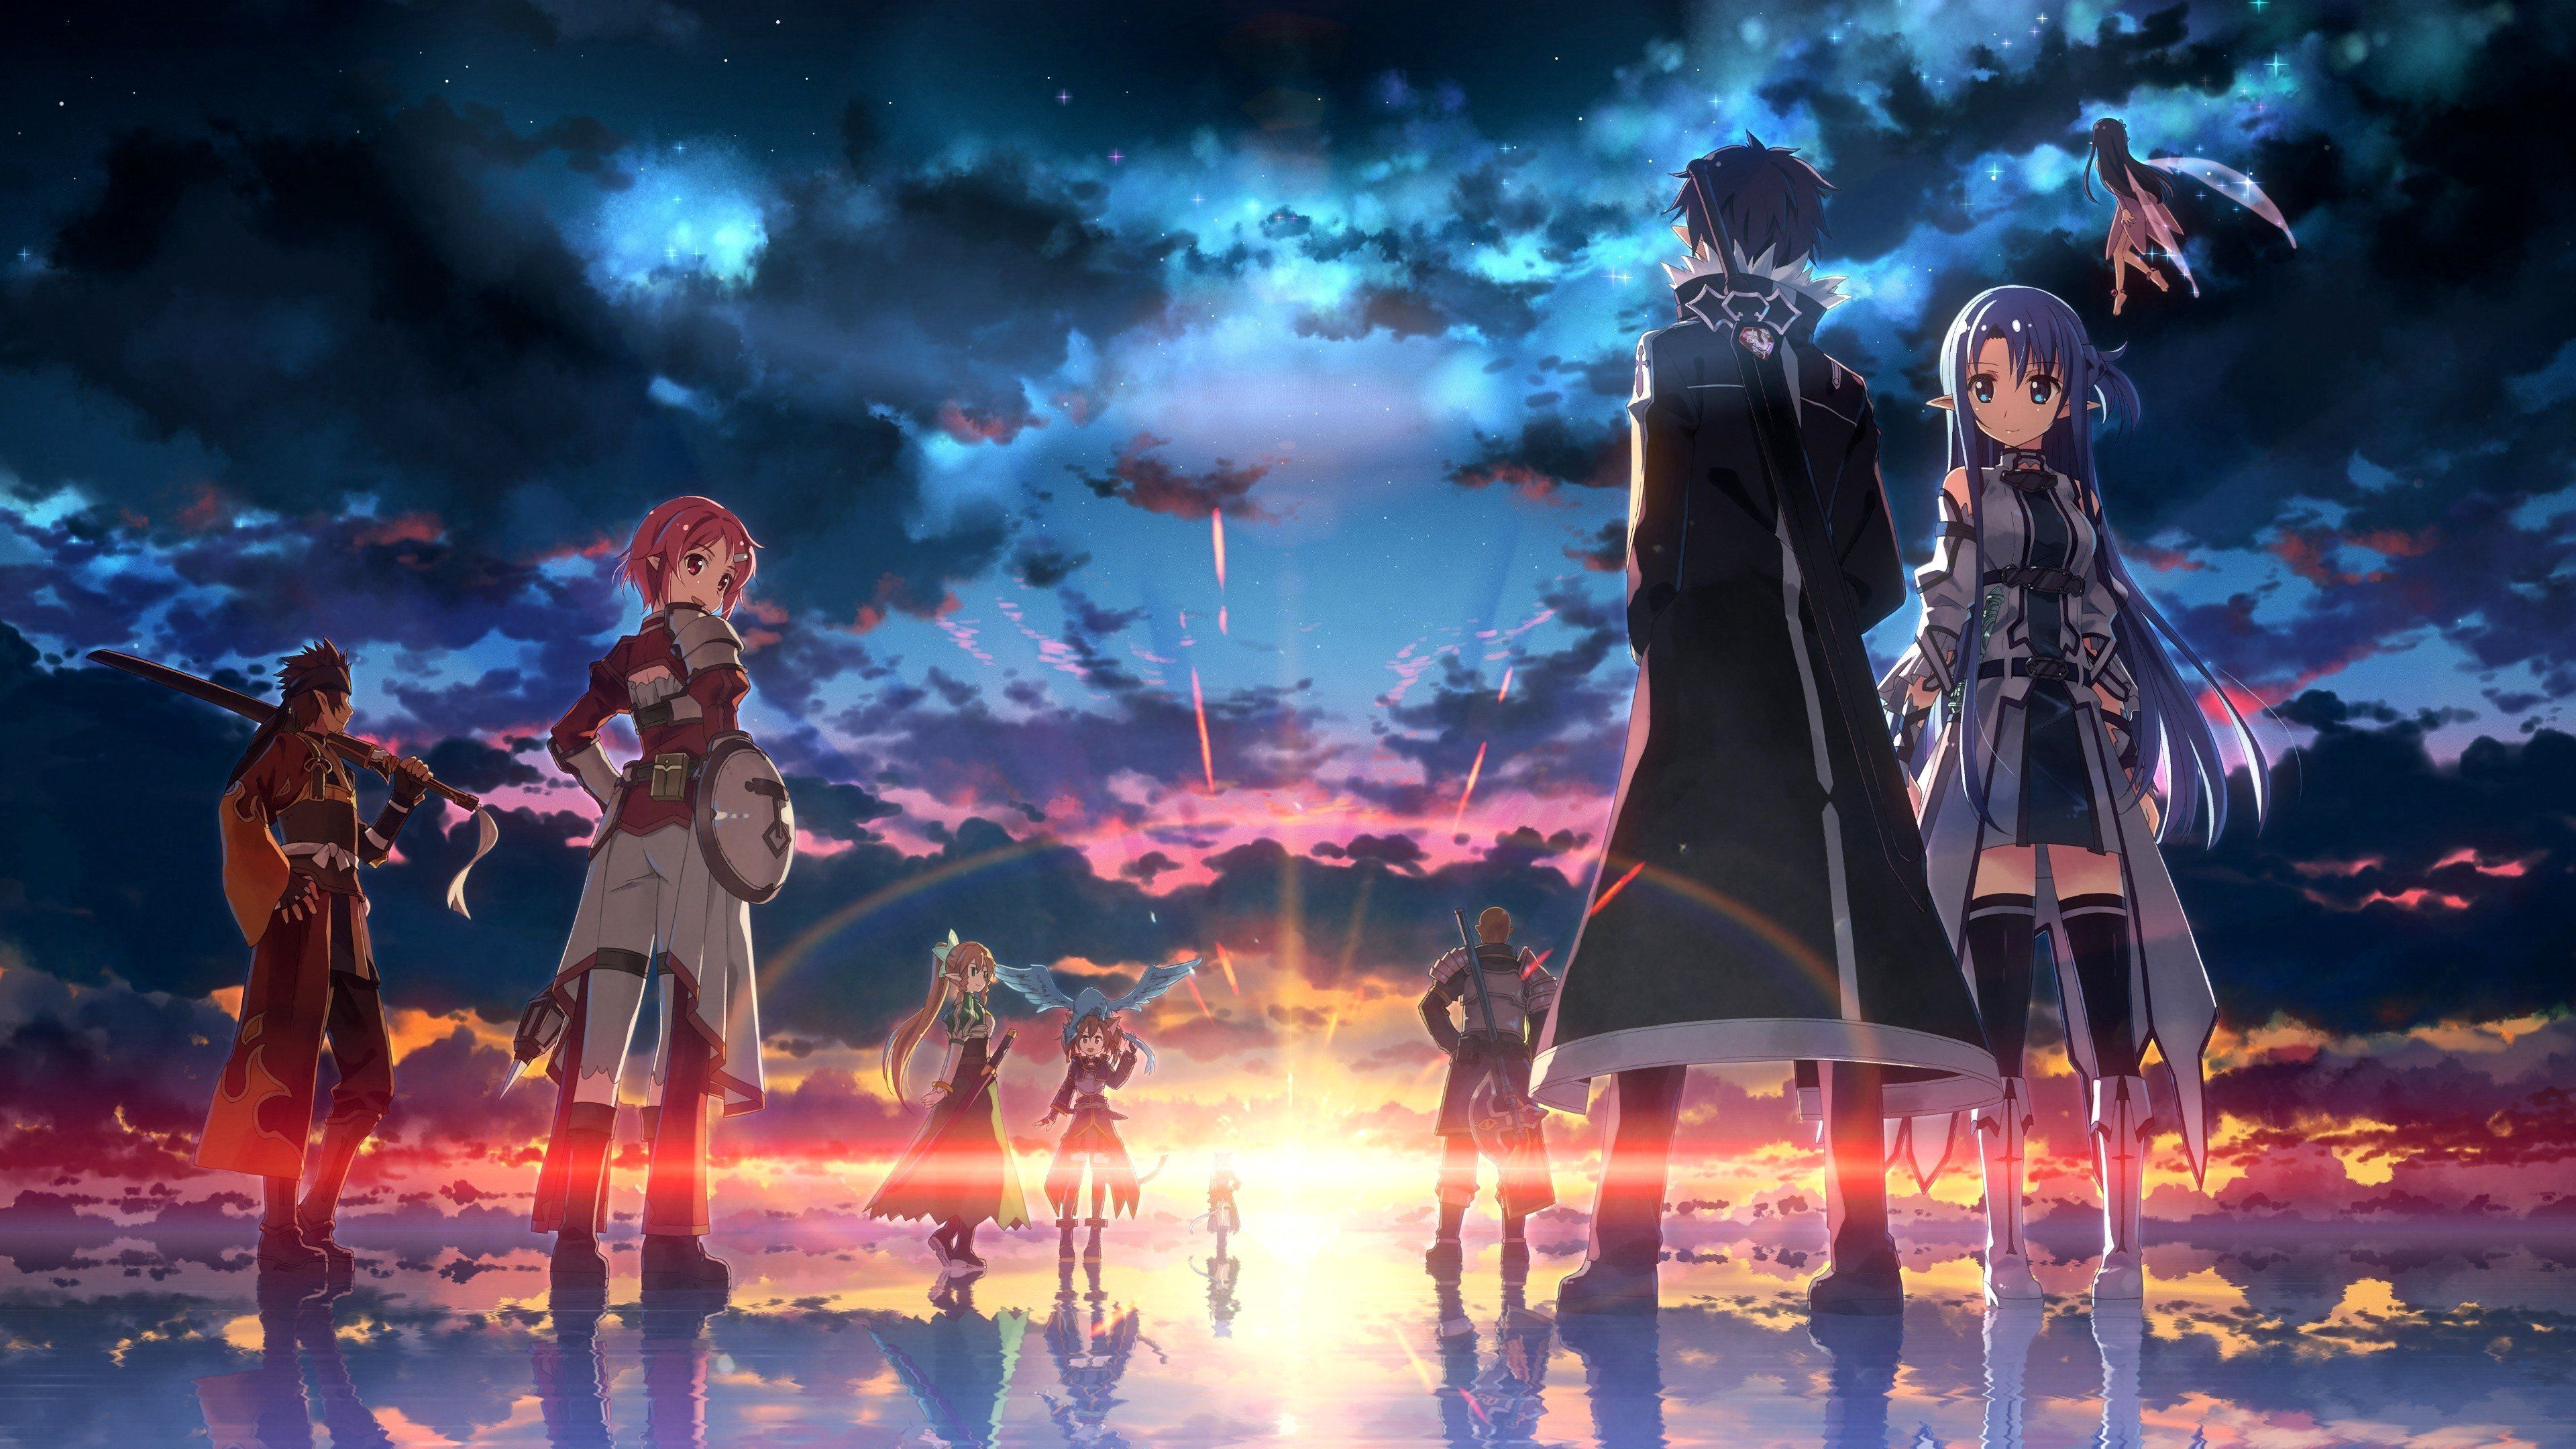 Sword Art Online Wallpaper 4k Pc Ideas Wallpaper In 2020 Sword Art Online Wallpaper Sword Art Sword Art Online